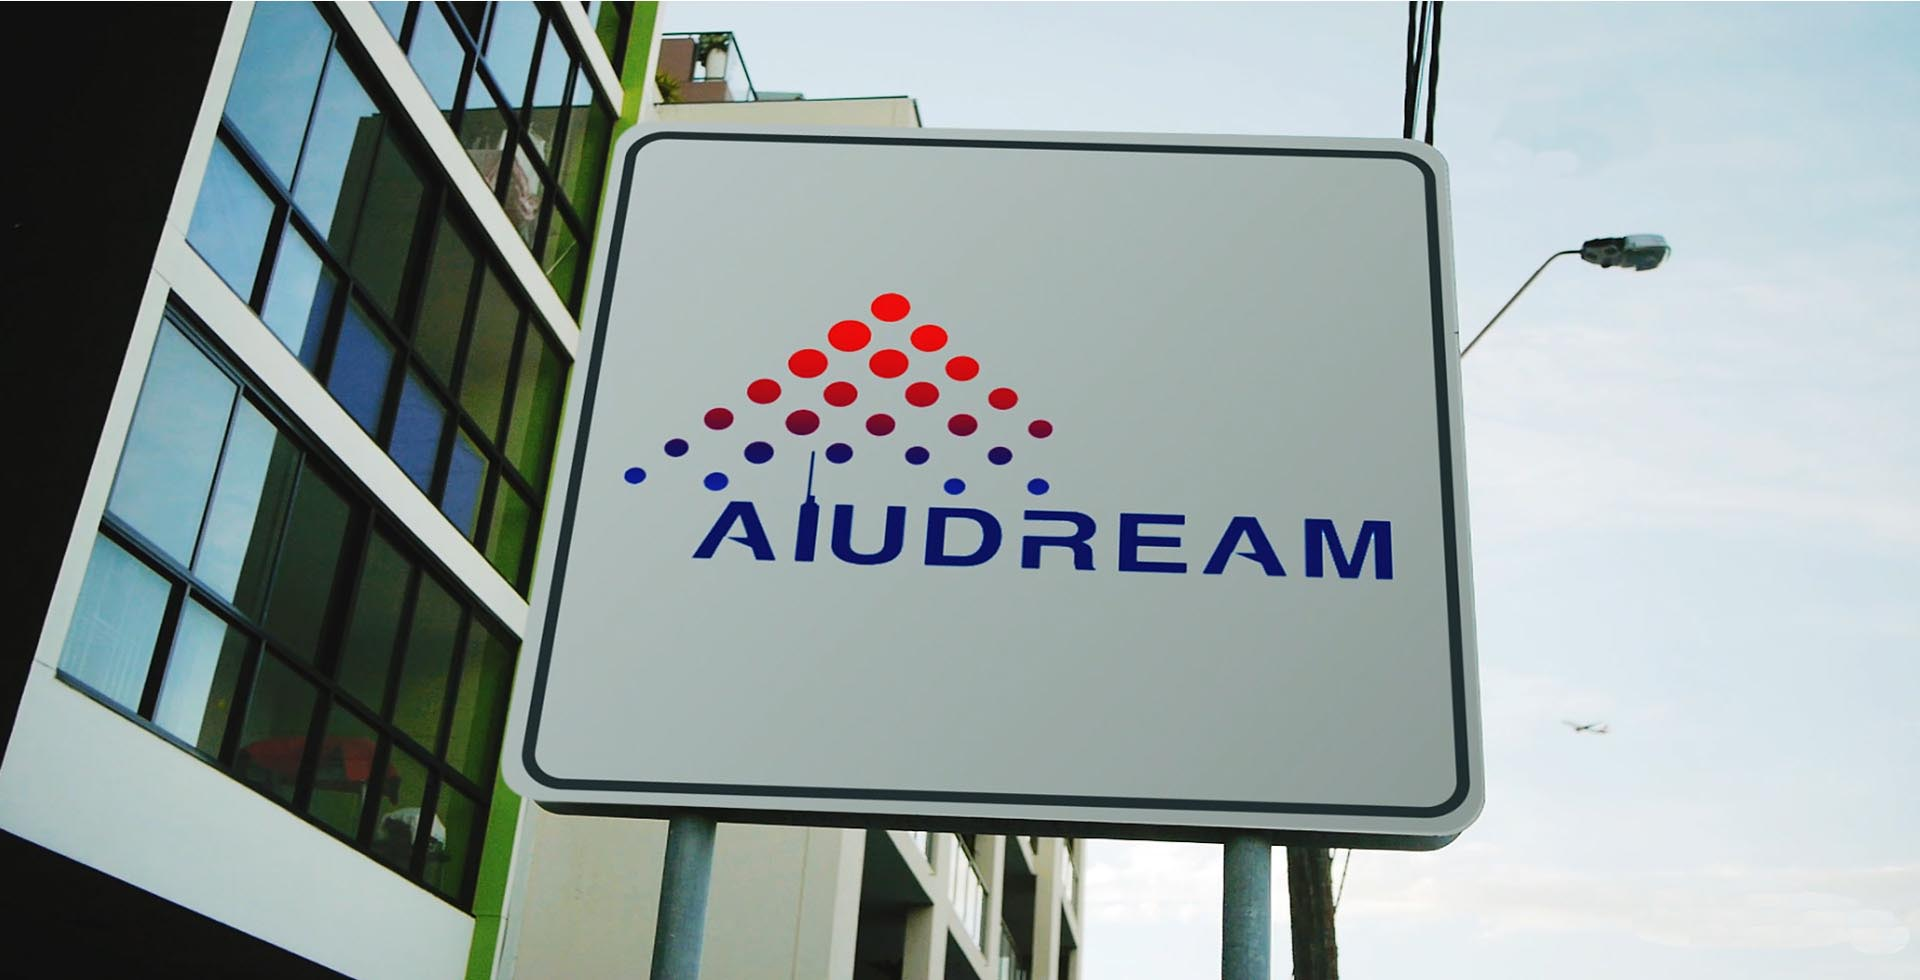 Aludream aluminum composite billboard panels